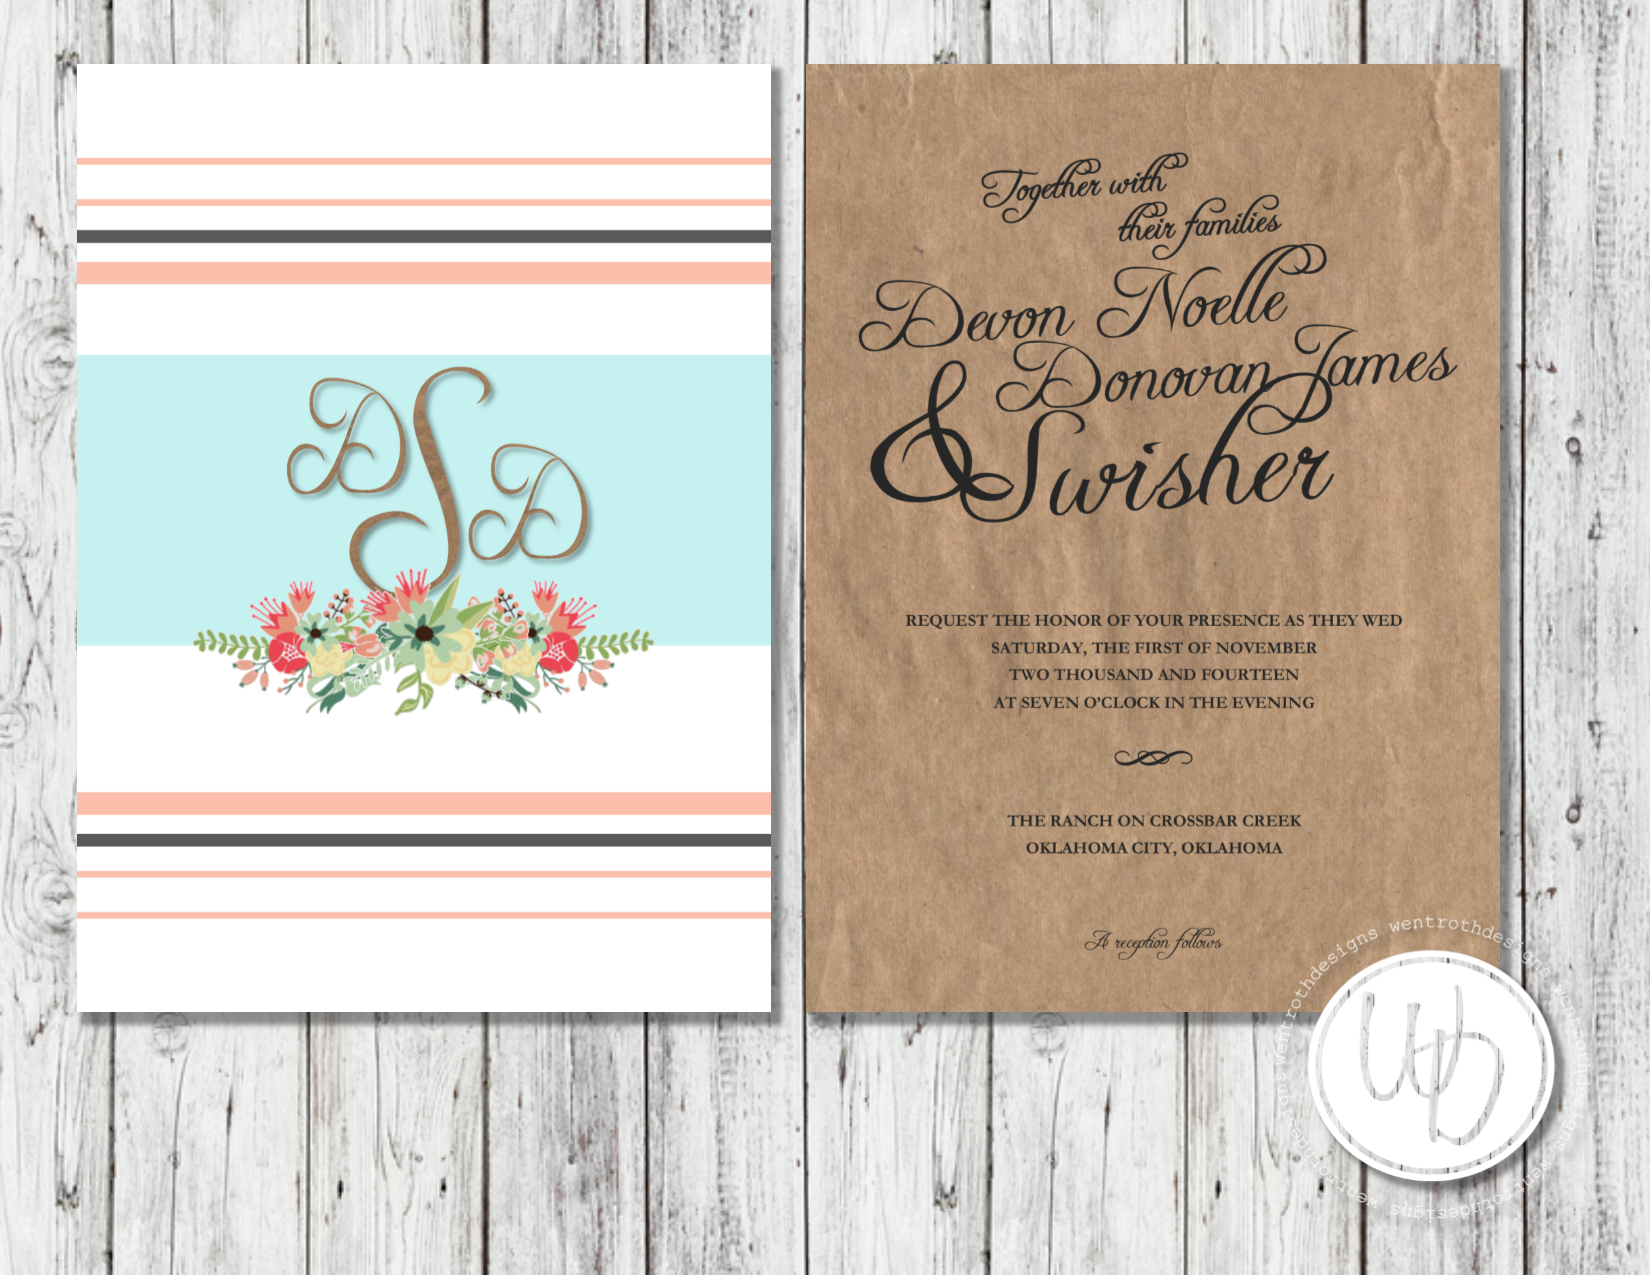 Rustic brown paper floral wedding invitation by wentroth designs rustic brown paper floral wedding invitation by wentroth designs visit us on facebook to request stopboris Images